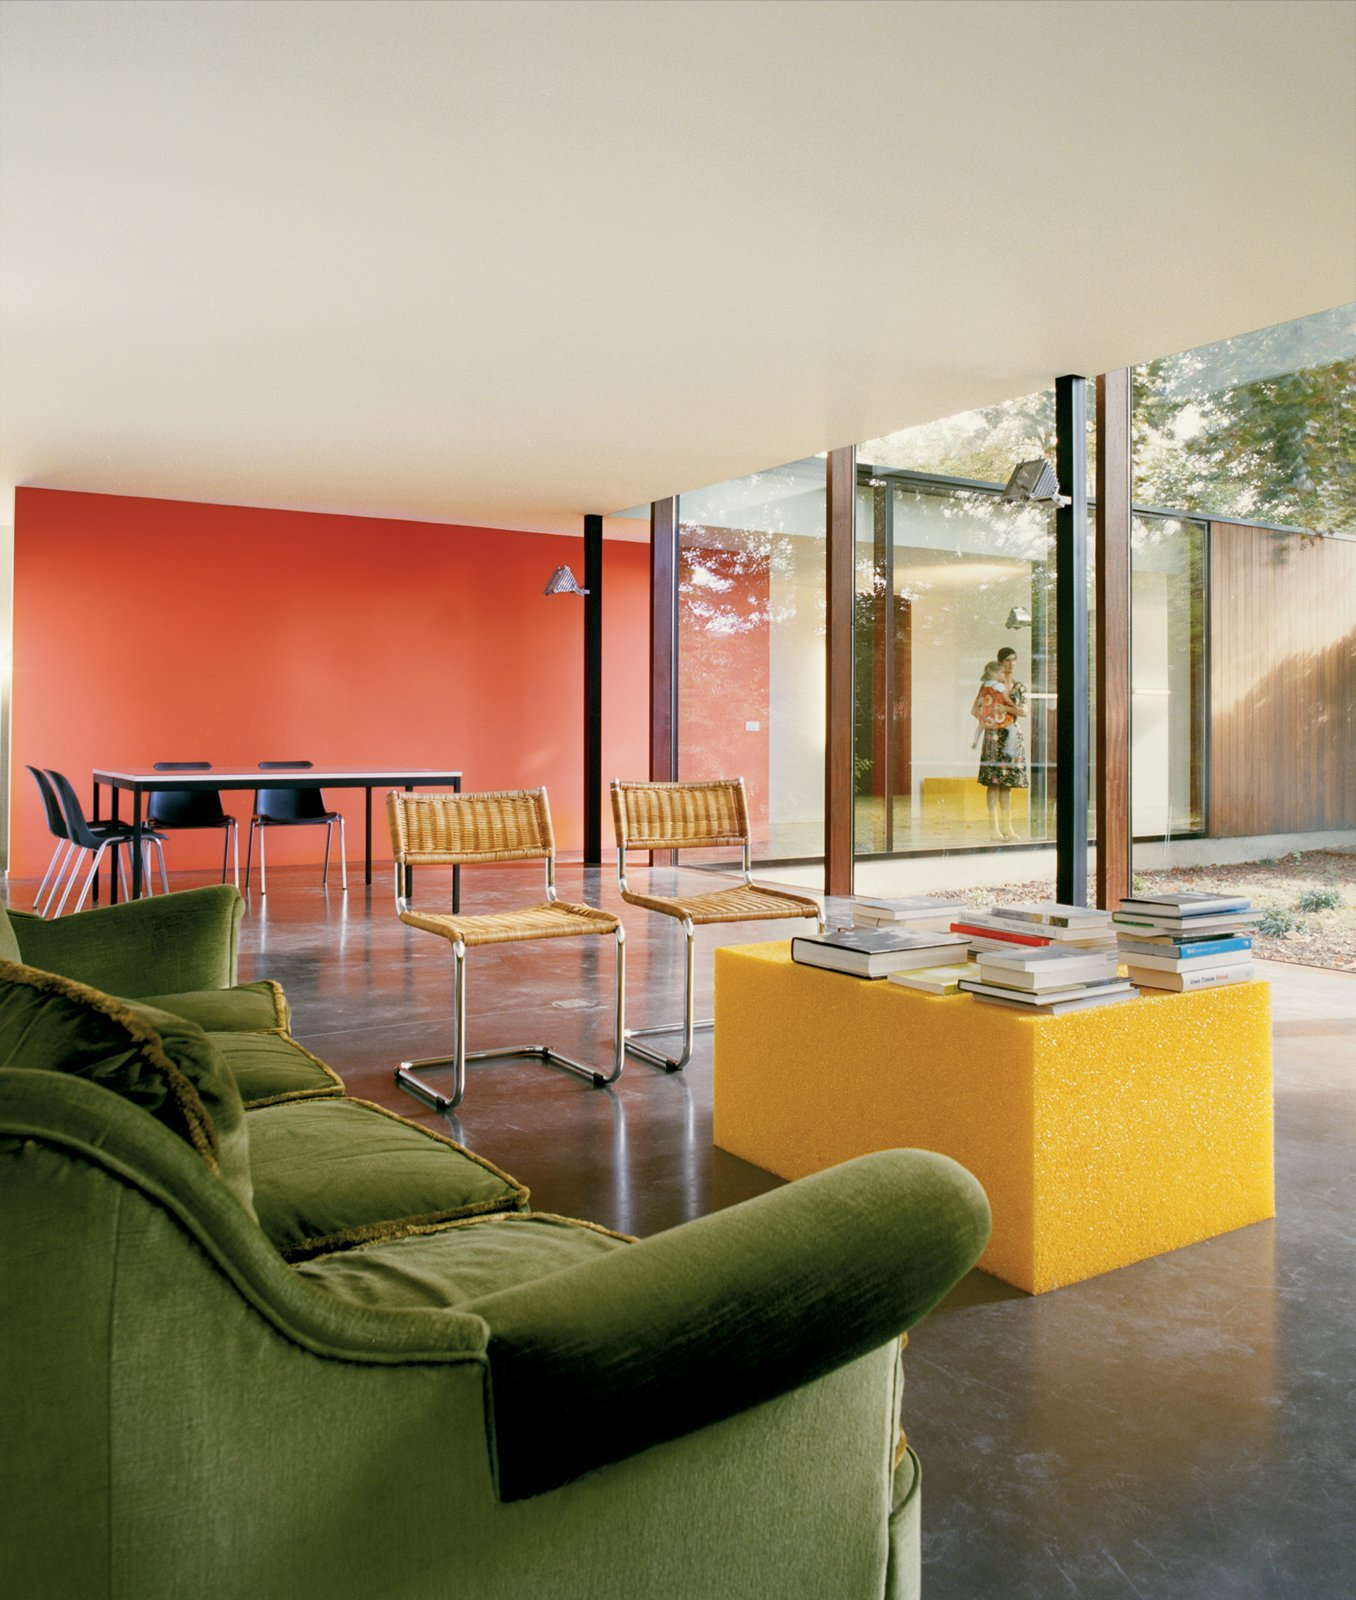 #modern #livingroom #color #greensofa #yellow #bright #orange  Photo by Hertha Hernaus   36+ Interior Color Pop Ideas For Modern Homes by Dwell